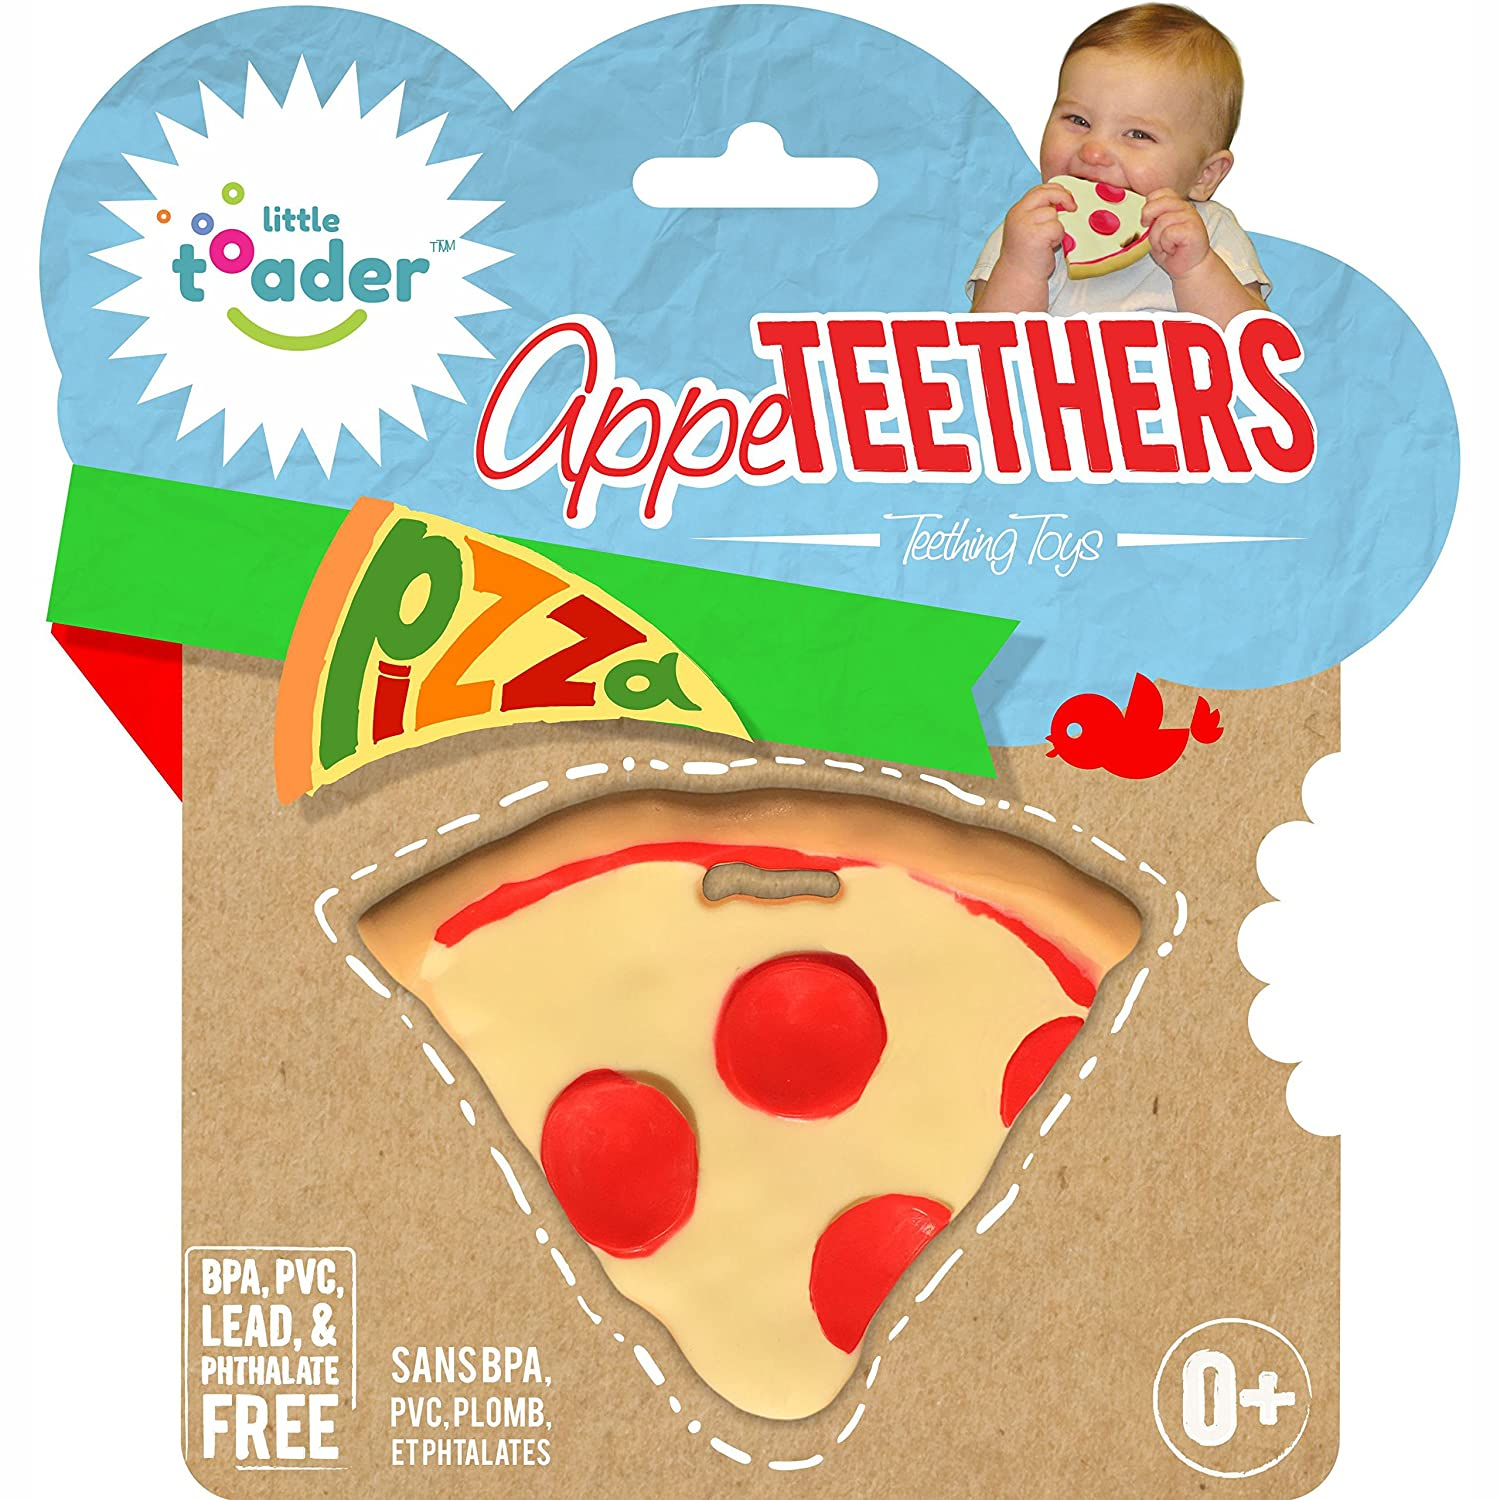 Teething Toys - BPA Free - Pizza Appe-Teether Little Toader